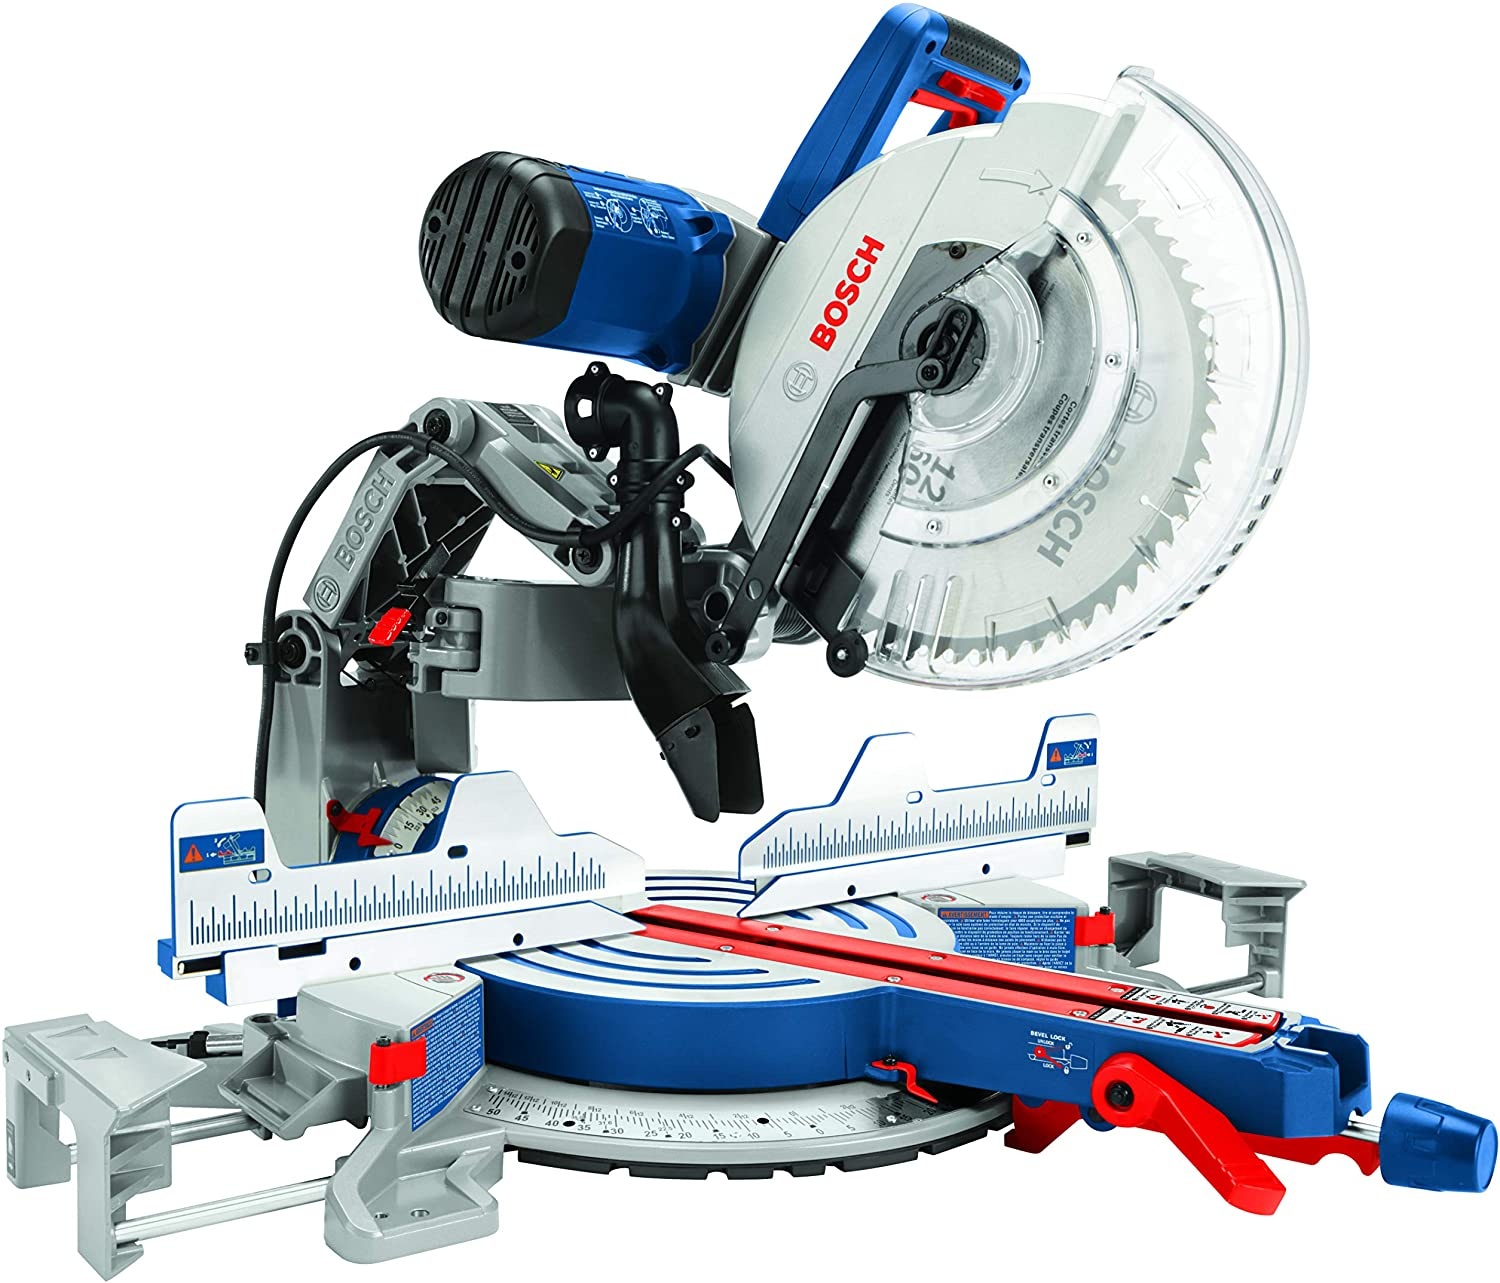 Bosch Power Tools GCM12SD – 15 Amp 12 in. Corded Dual-Bevel Sliding Glide Miter Saw with 60 Tooth Saw Blade